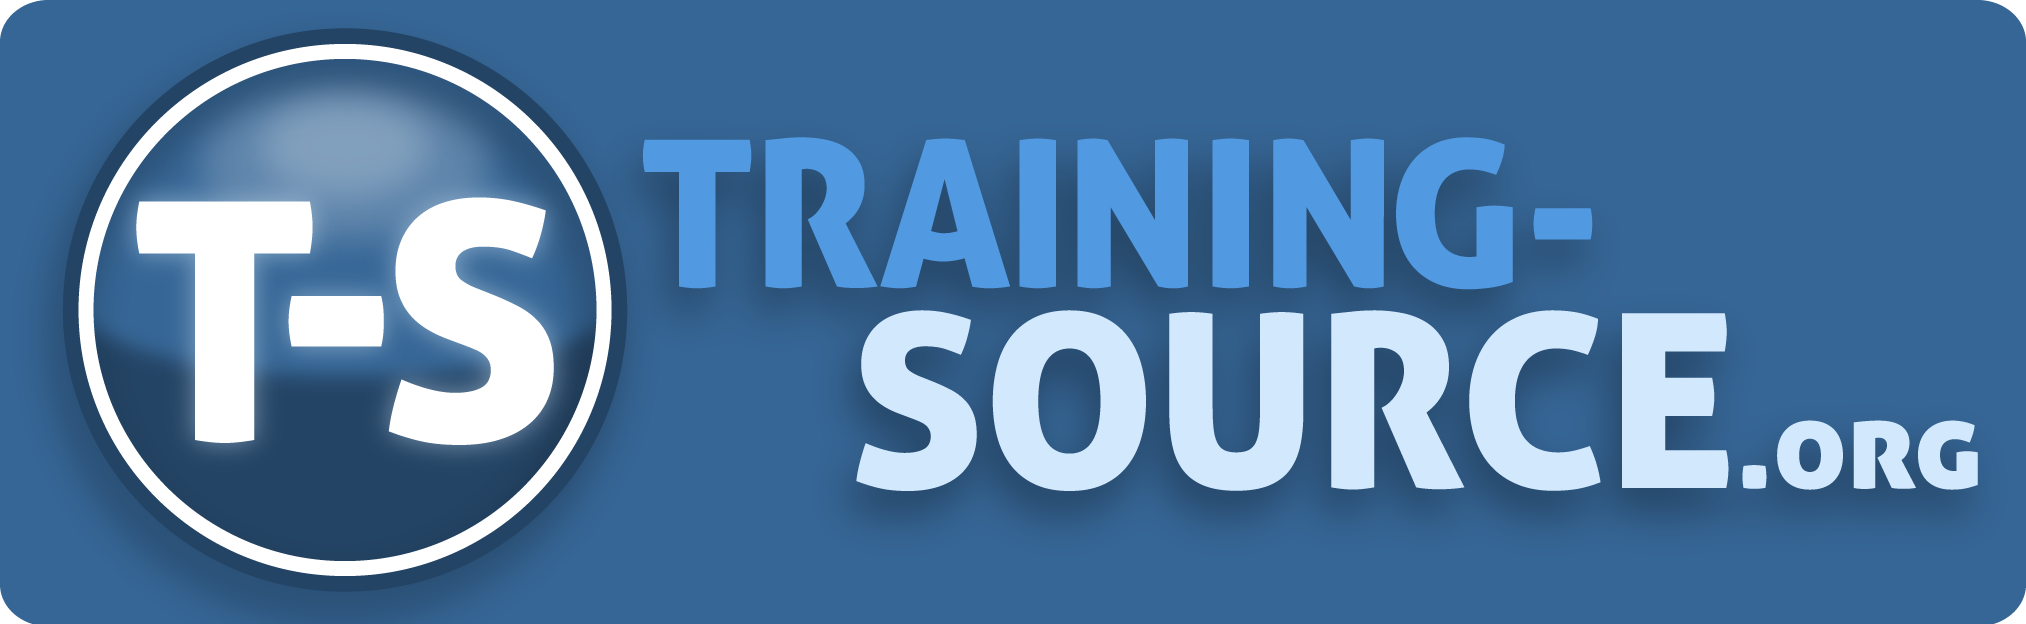 Training Source dot org learning management system logo